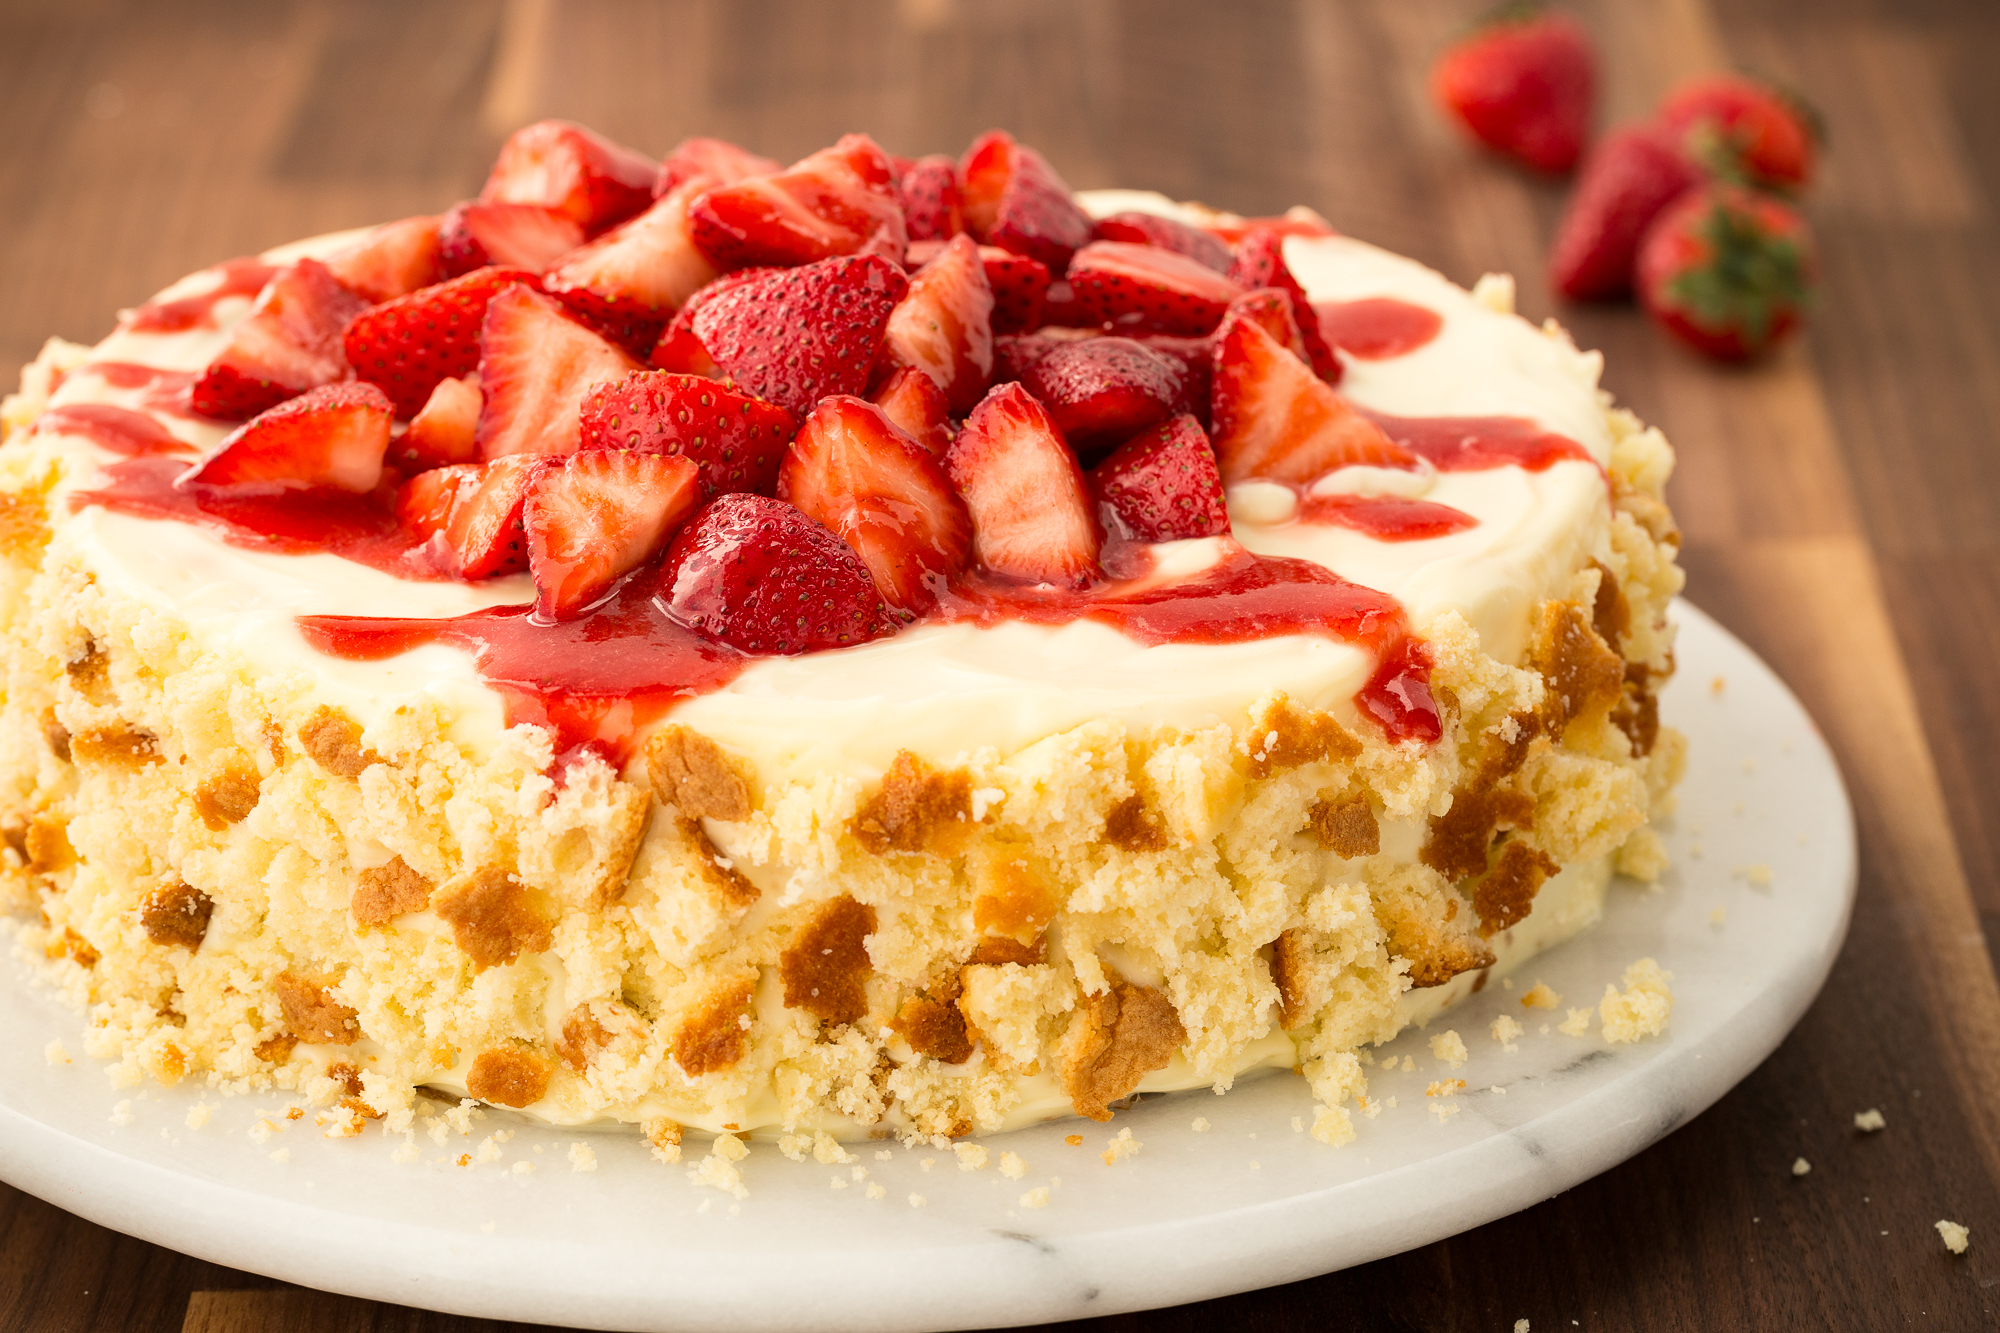 Easiest Strawberry Shortcake Recipe